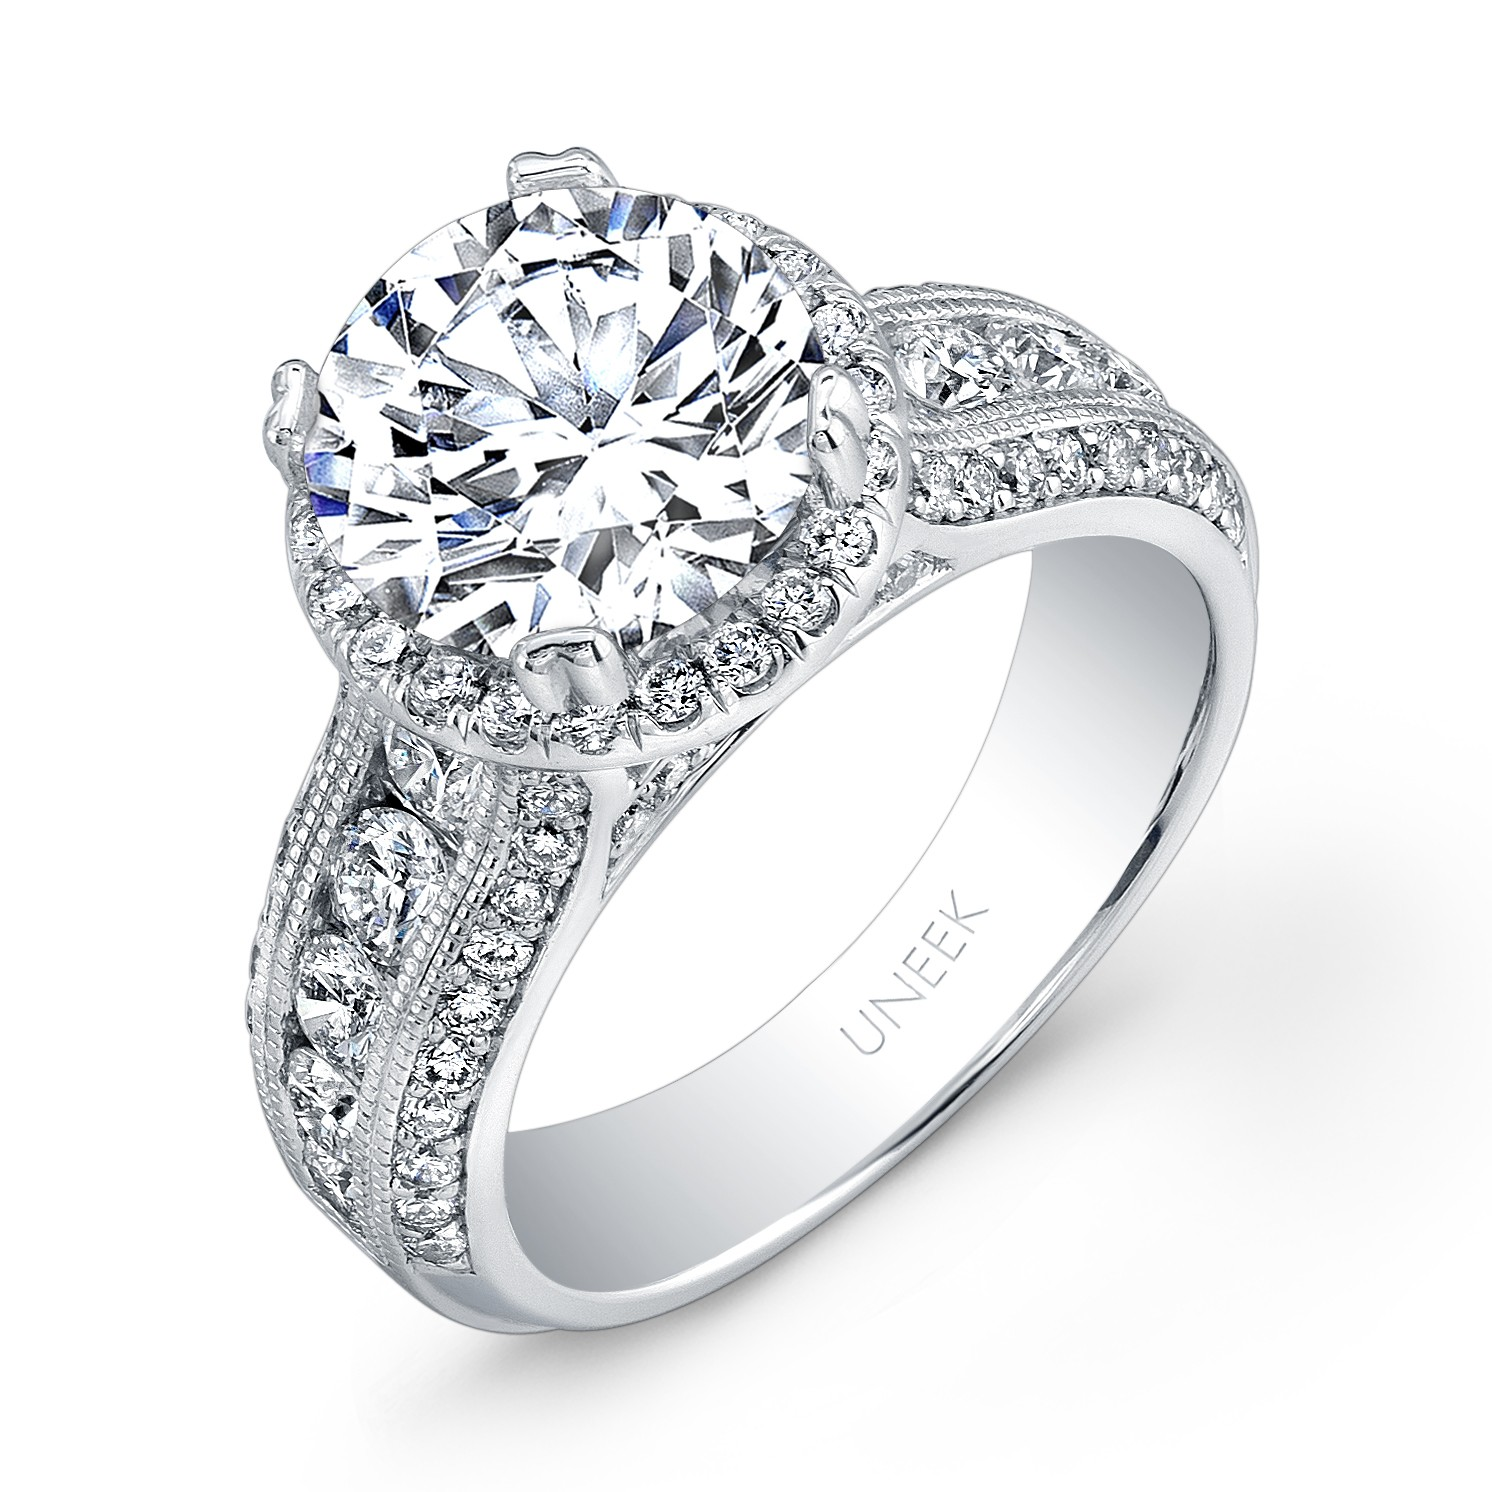 Uneek Round Diamond Wide Band Halo Engagement Ring With Milgrain